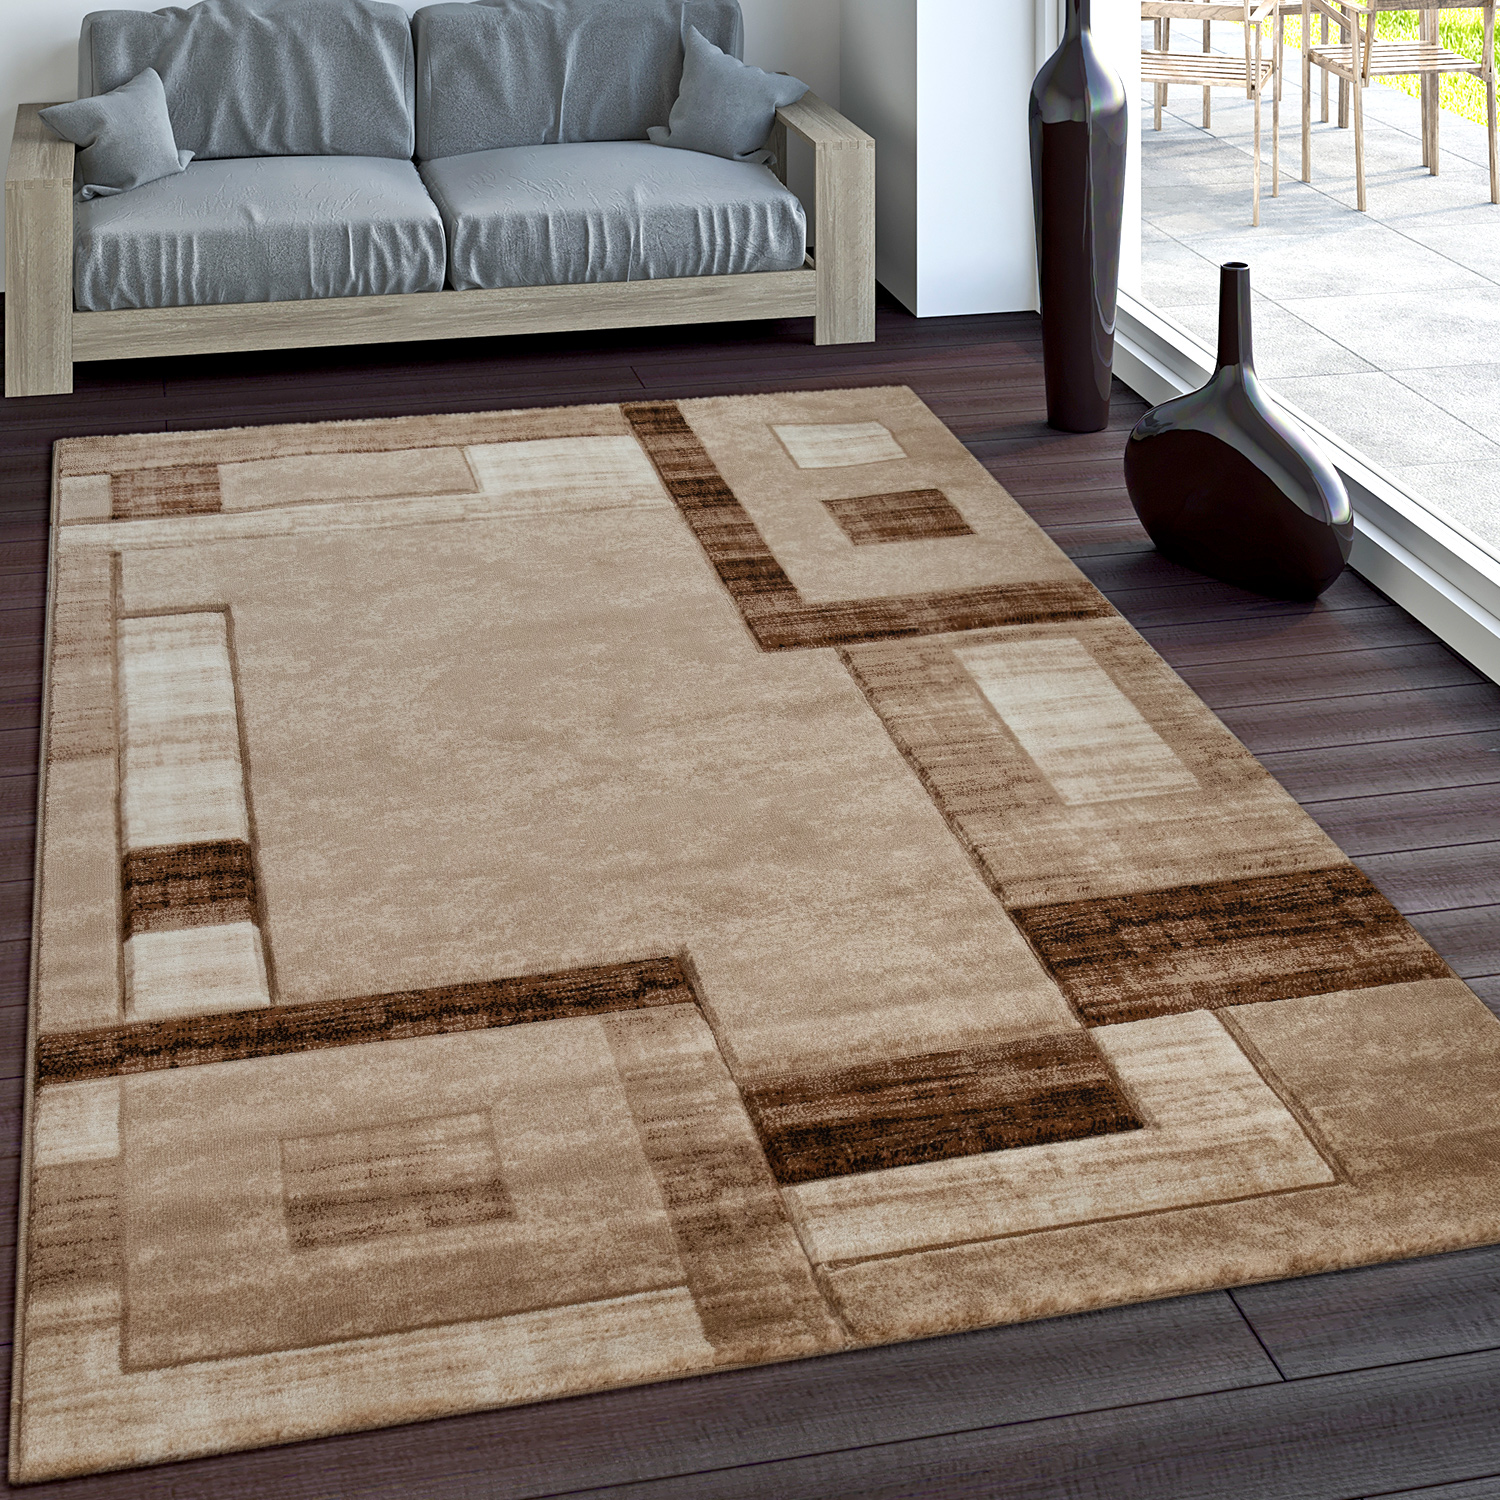 Luxury Designer Rug - Contour Cut - Geometric Checked - Mottled Brown Beige